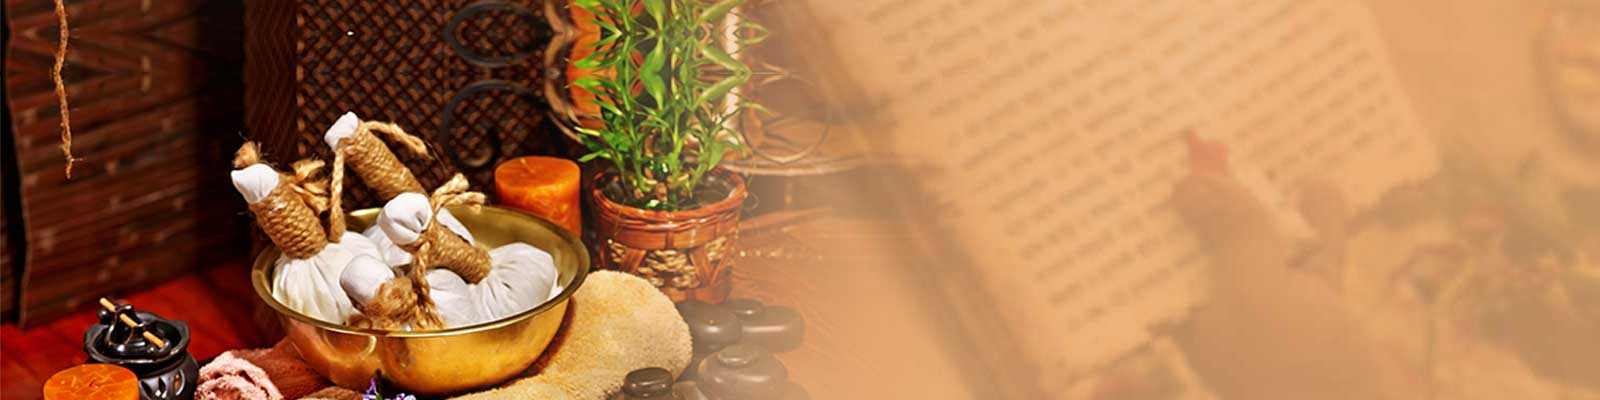 Holistic Healing Centers Can Change Your Life